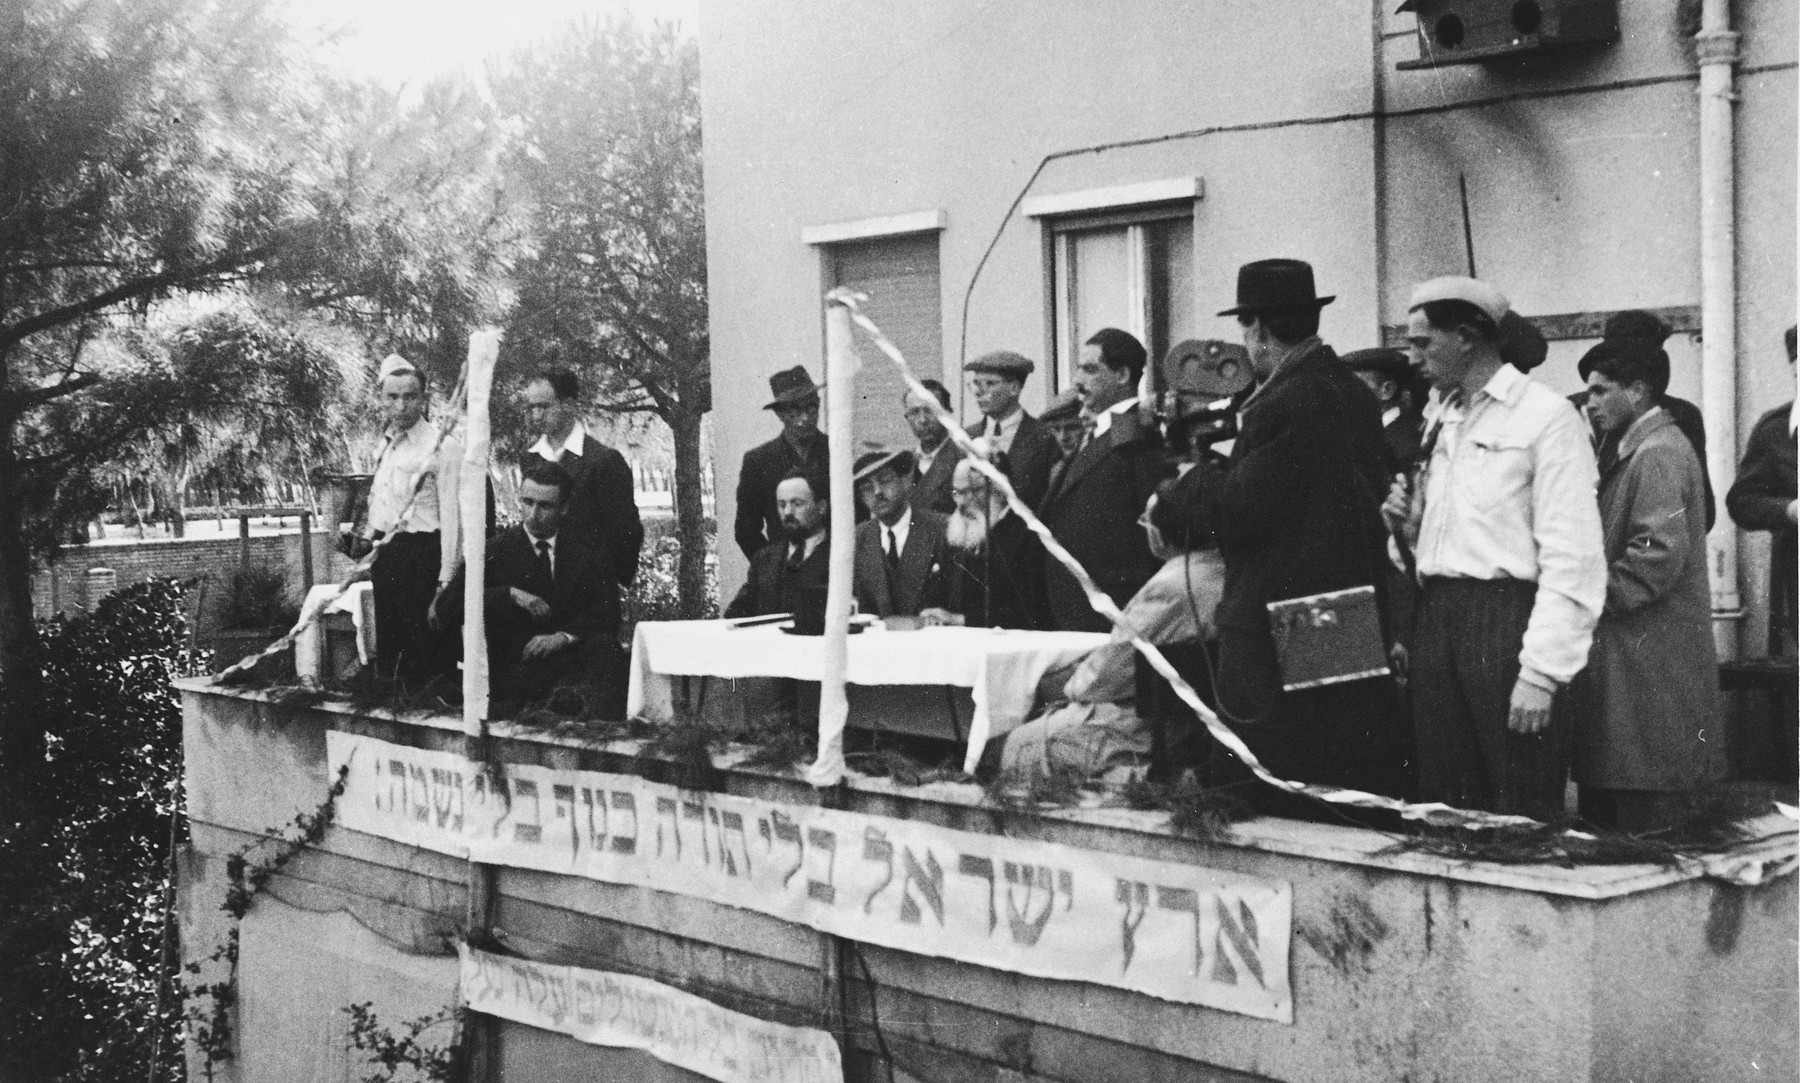 """DP religious leaders stand on the balcony of a building in Italy during a Zionist rally.  The banner reads, """"The Land of Israel without the Torah is like a body without a soul."""""""